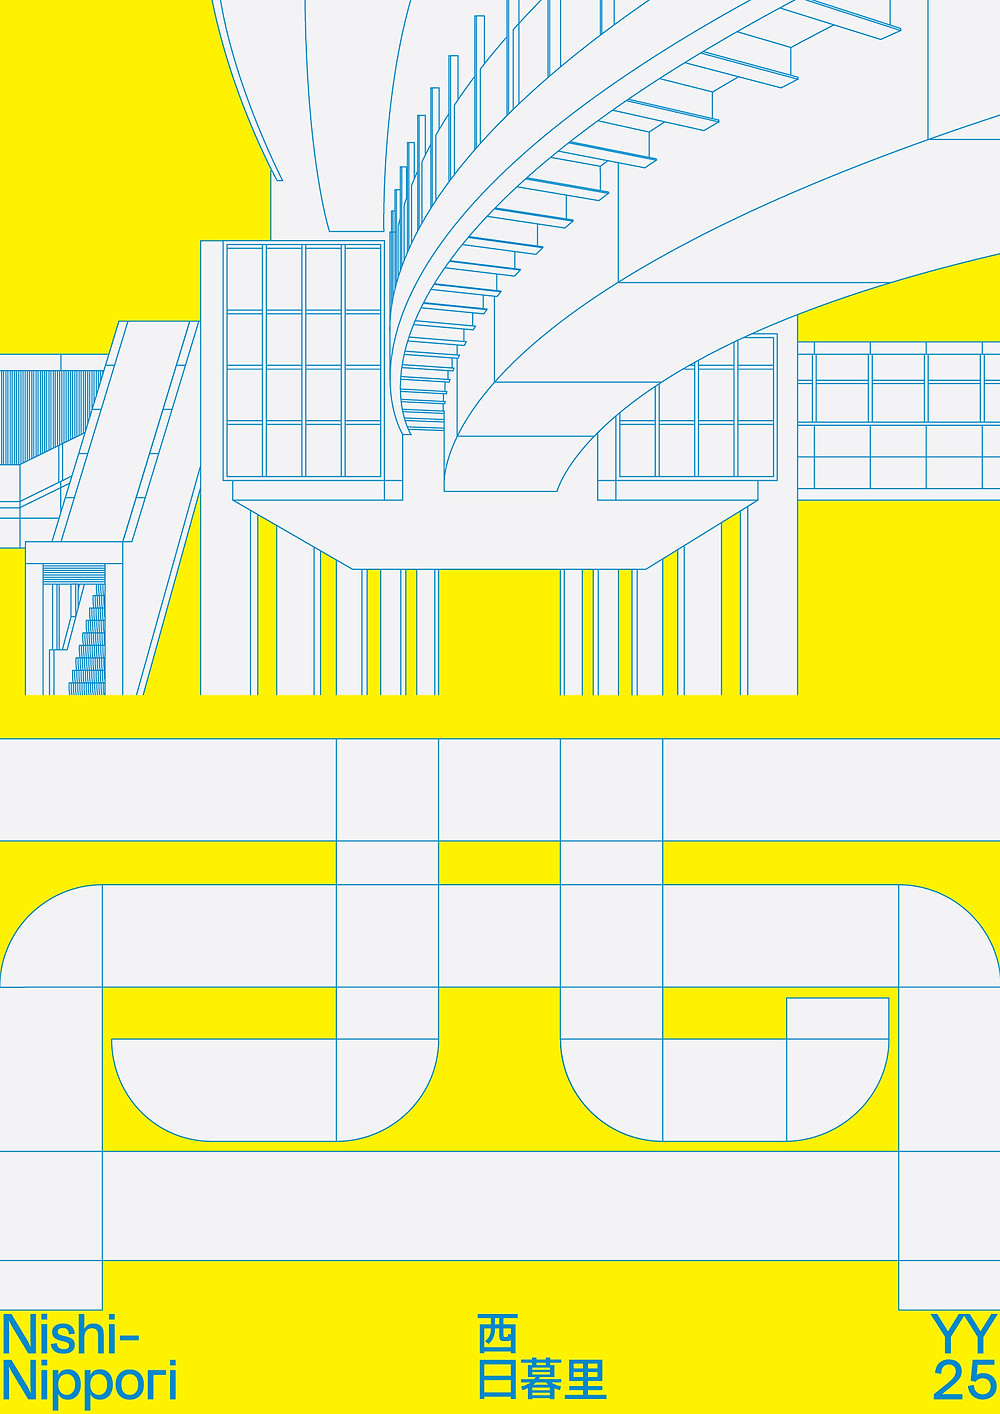 """Poster Nishi-Nippori Tokyo: A personal interpretation of the station and crowded neighbourhood """"Nishi-Nippori"""" in Tokyo. This poster combines architectural and typographic studies of this area of the city.  Poster design for YamanoteYamanote Poster Project B2 Offset print / Matt uncoated"""